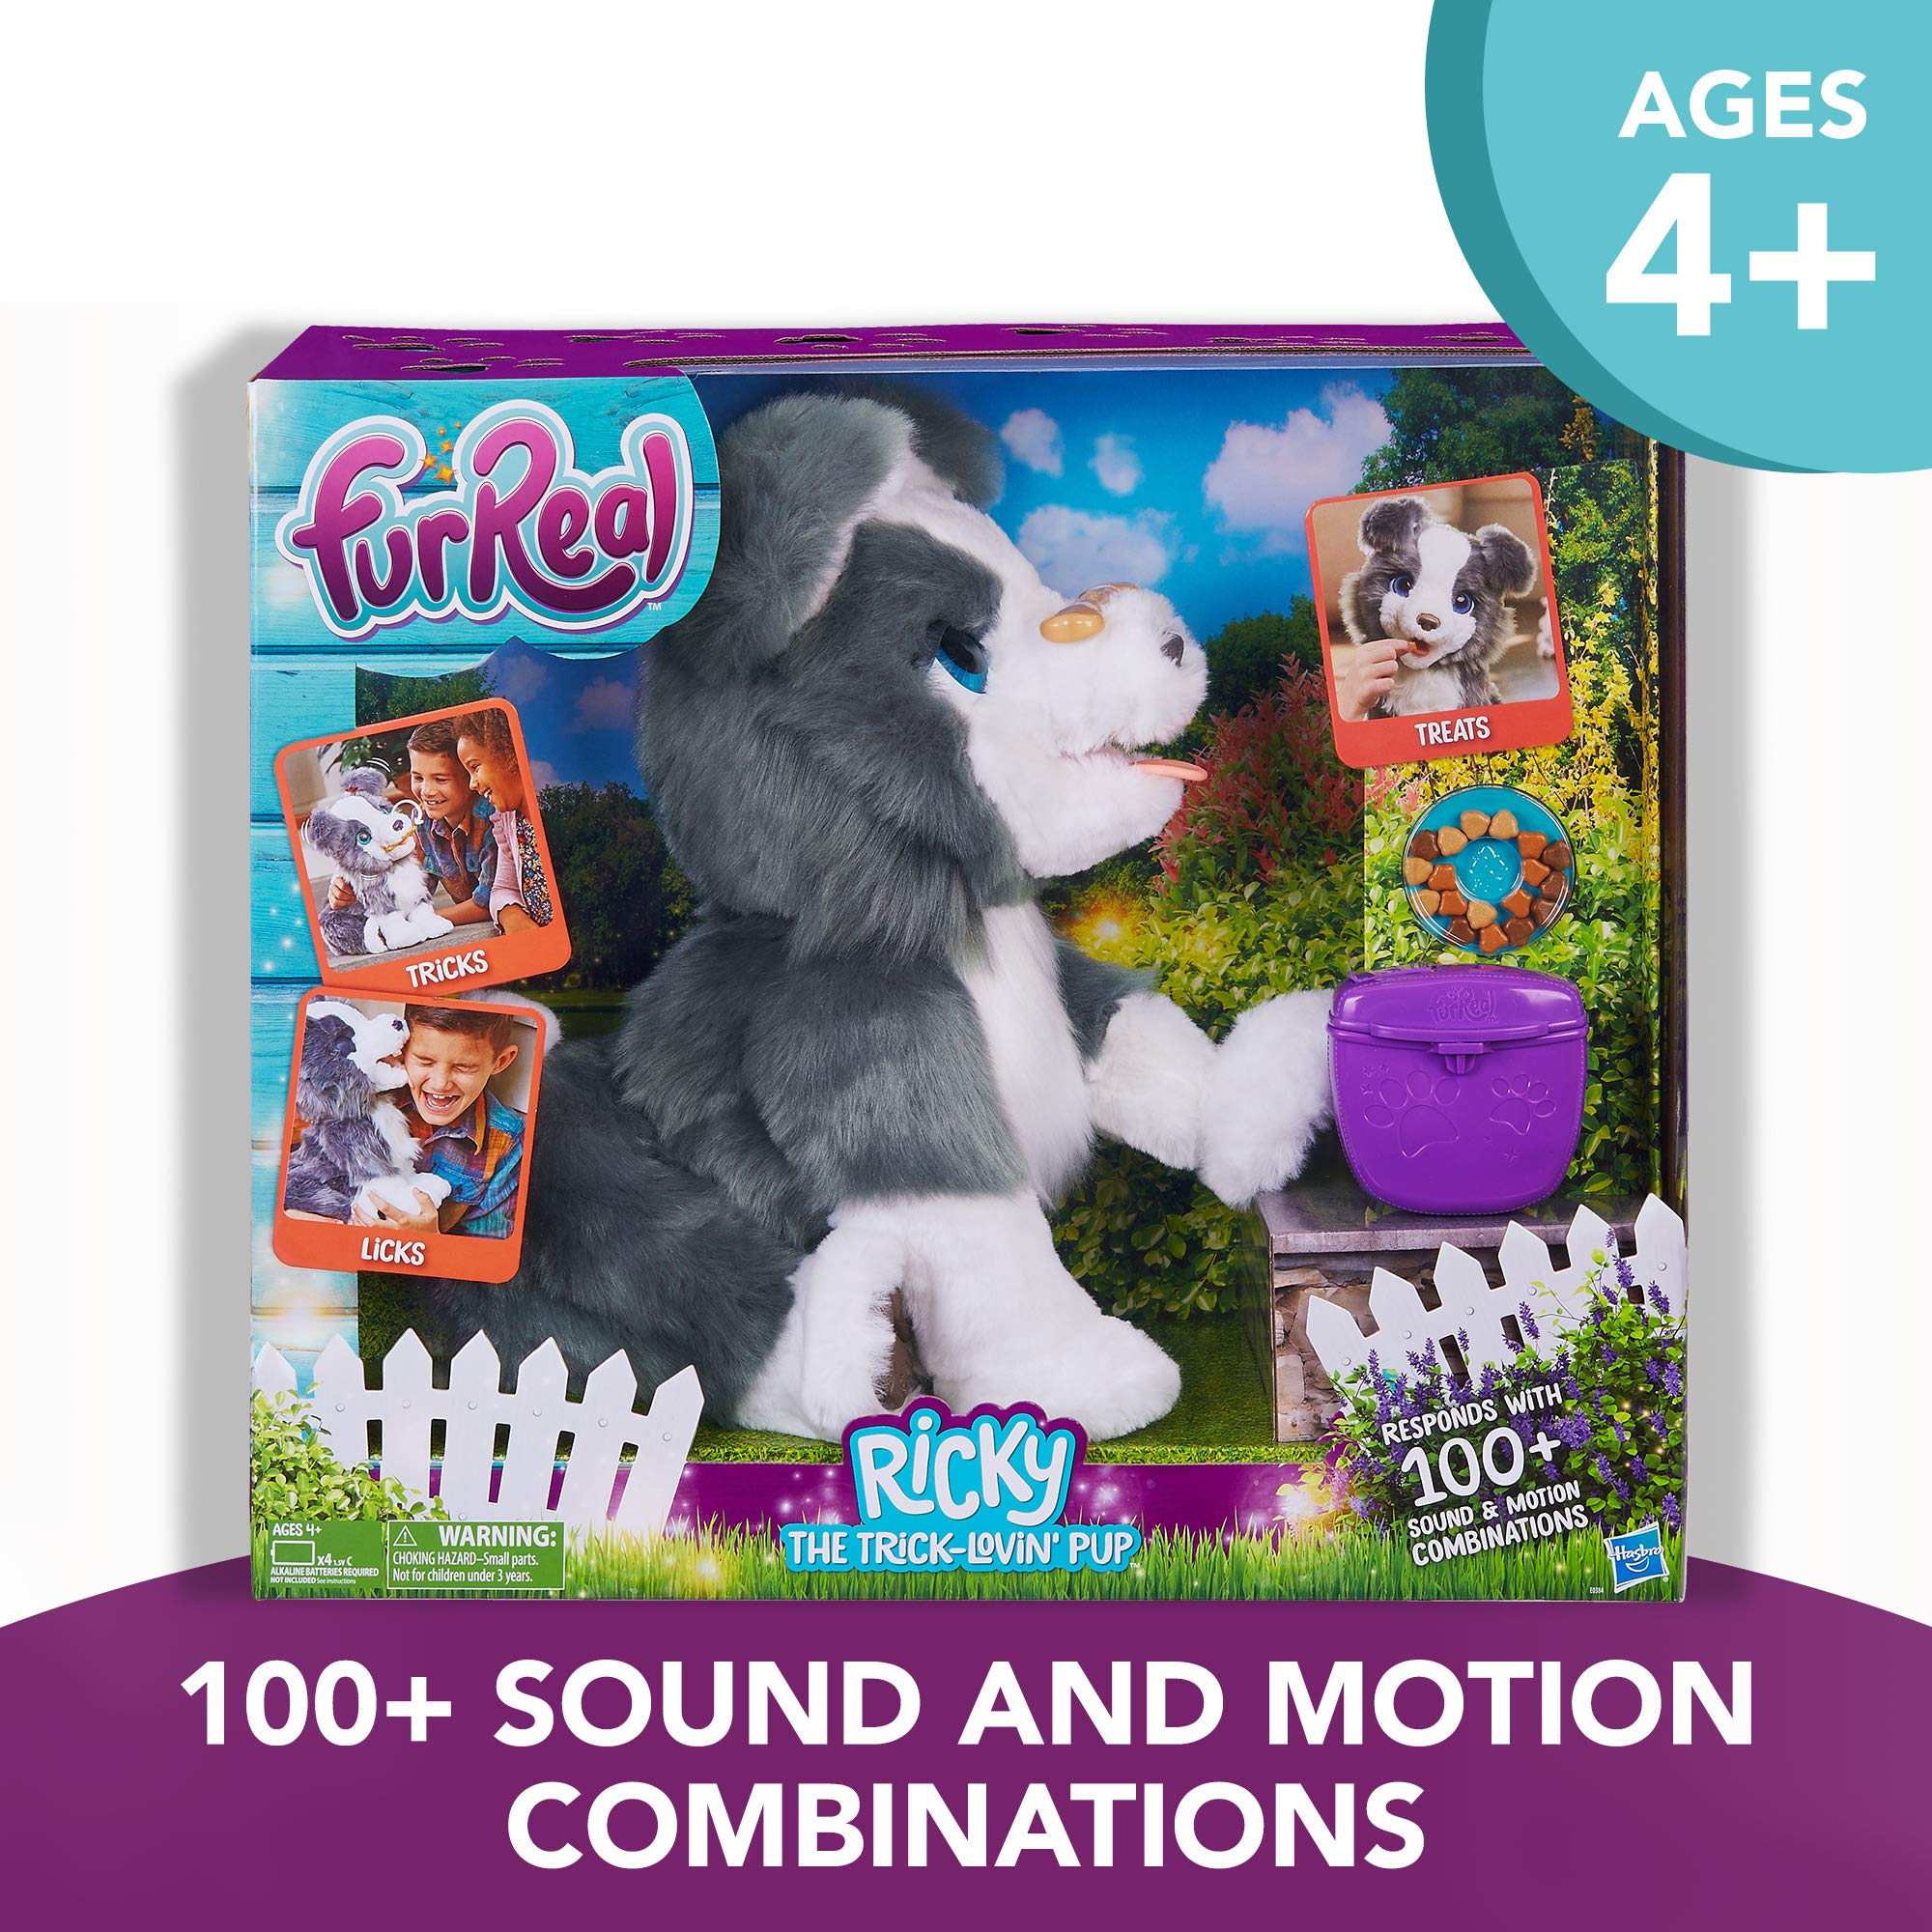 FurReal Friends Ricky, the Trick-Lovin' Interactive Plush Pet Toy, 100+ Sound-and-Motion Combinations, Ages 4 and Up by FurReal (Image #2)